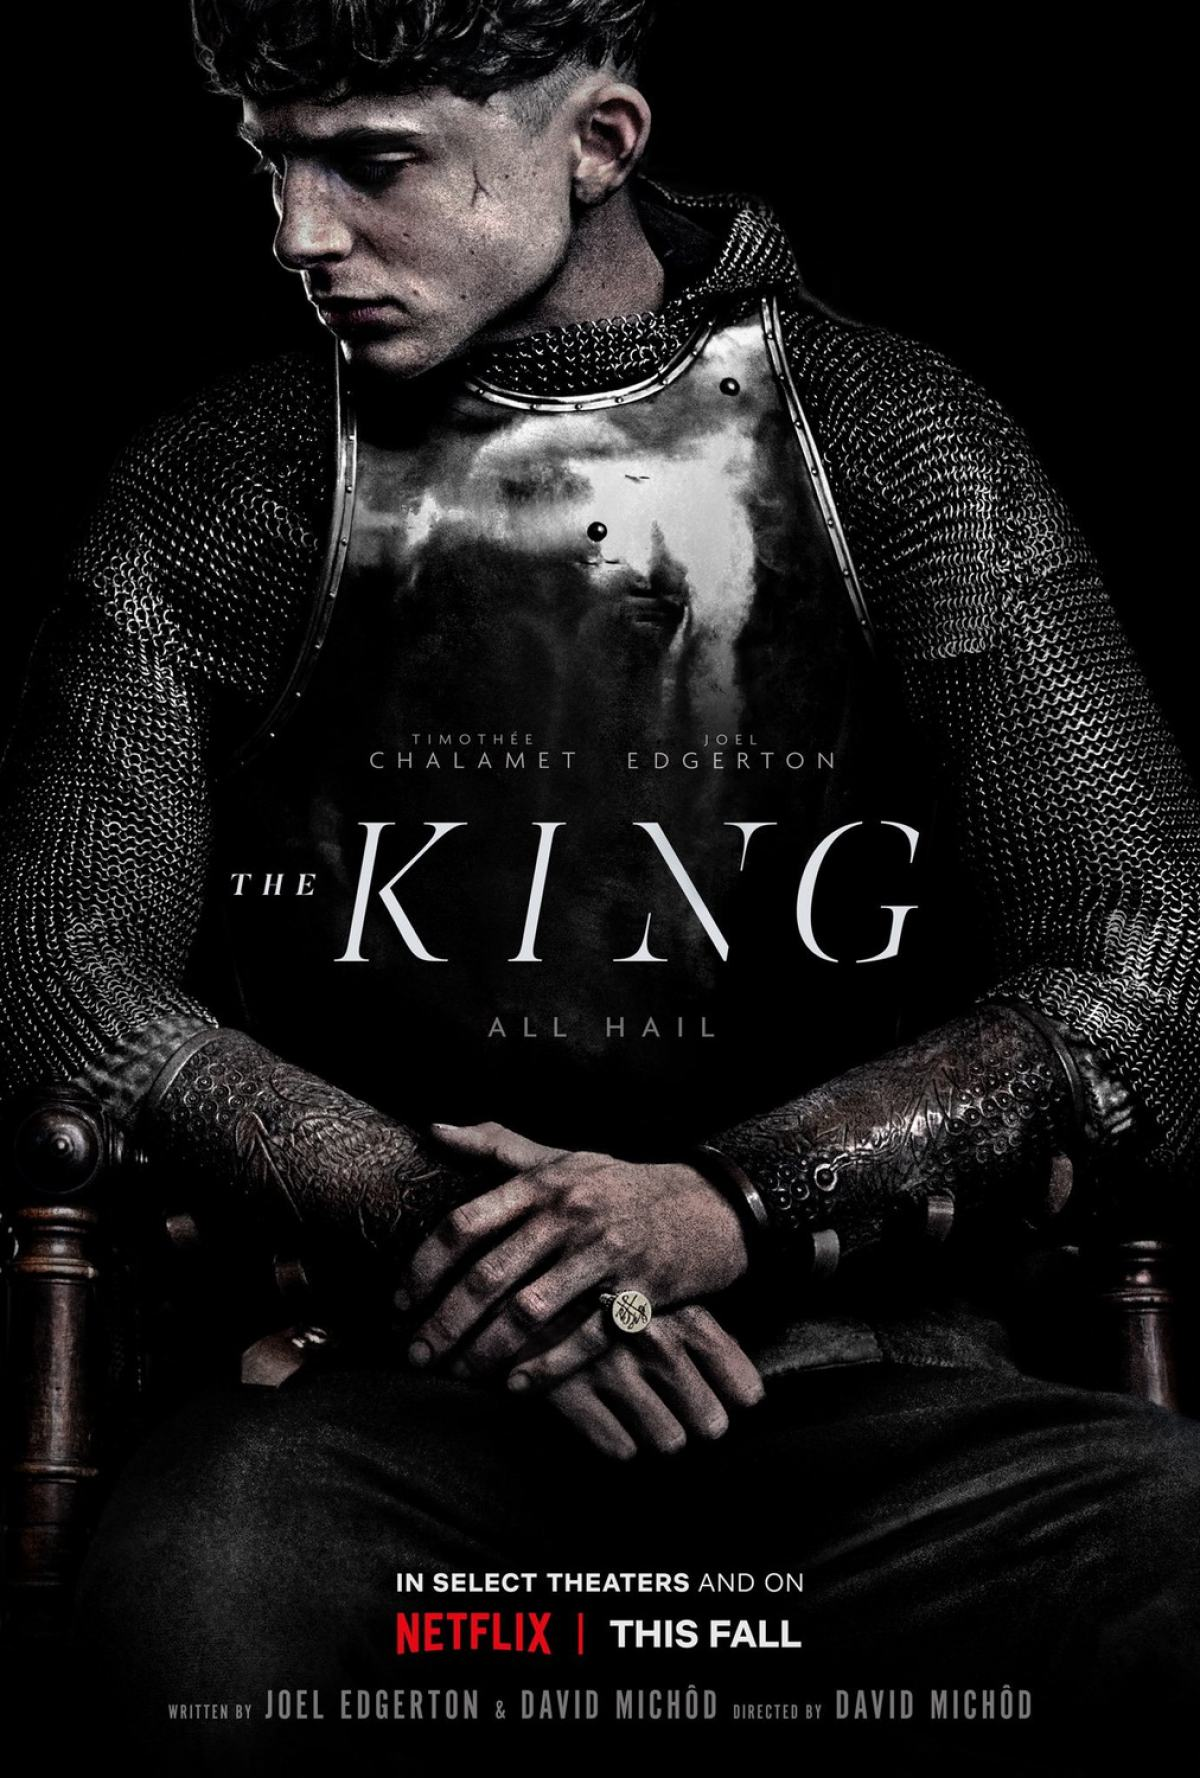 The King Teaser & Poster